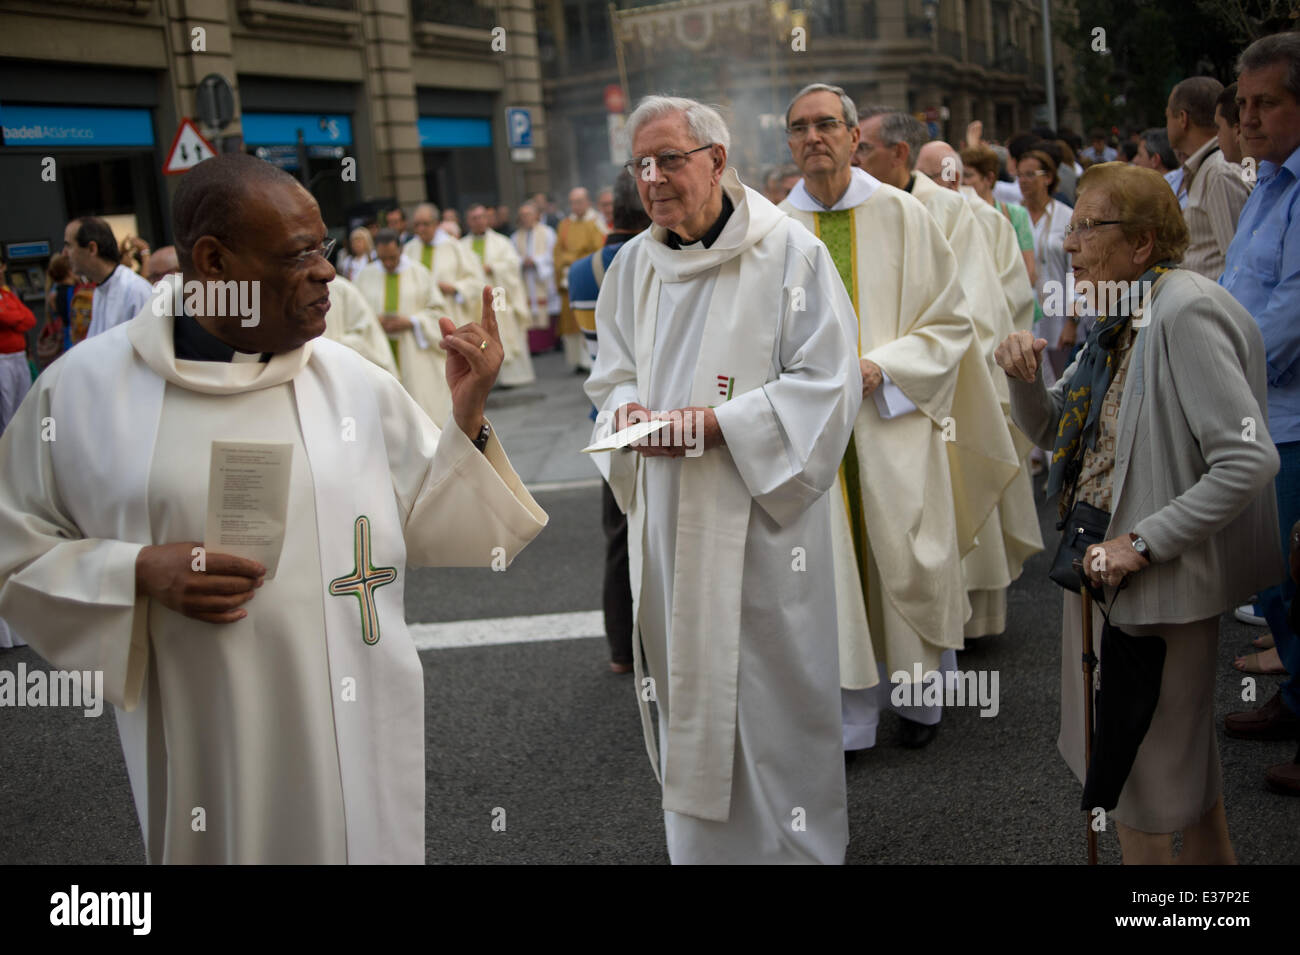 Barcelona, Spain. 22nd June, 2014. A priest talks to a woman during a religious procession in the streets of Barcelona. - Stock Image